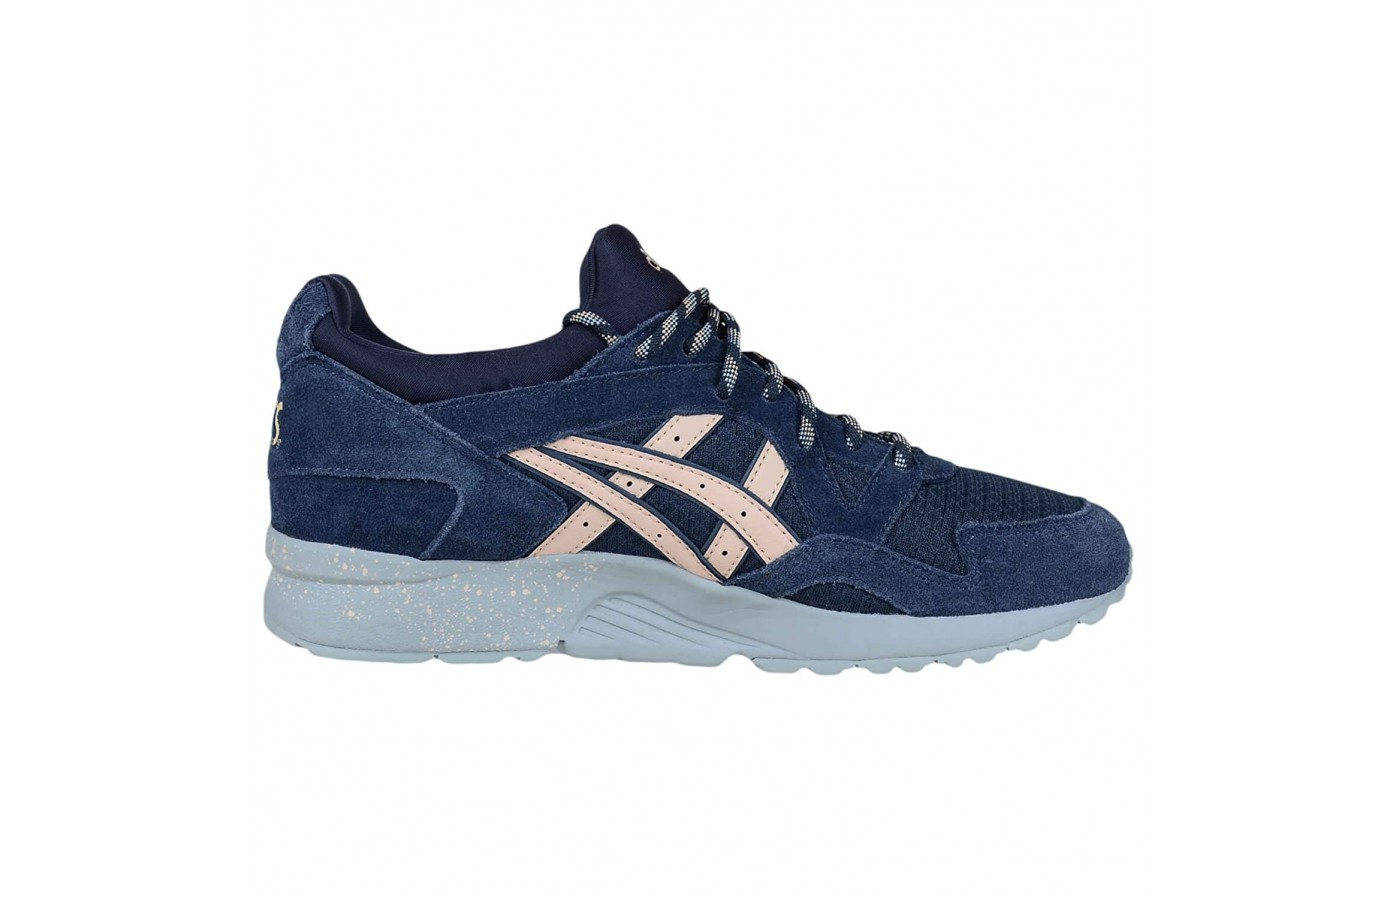 The Asics Gel Lyte V comes in a variety of upper materials